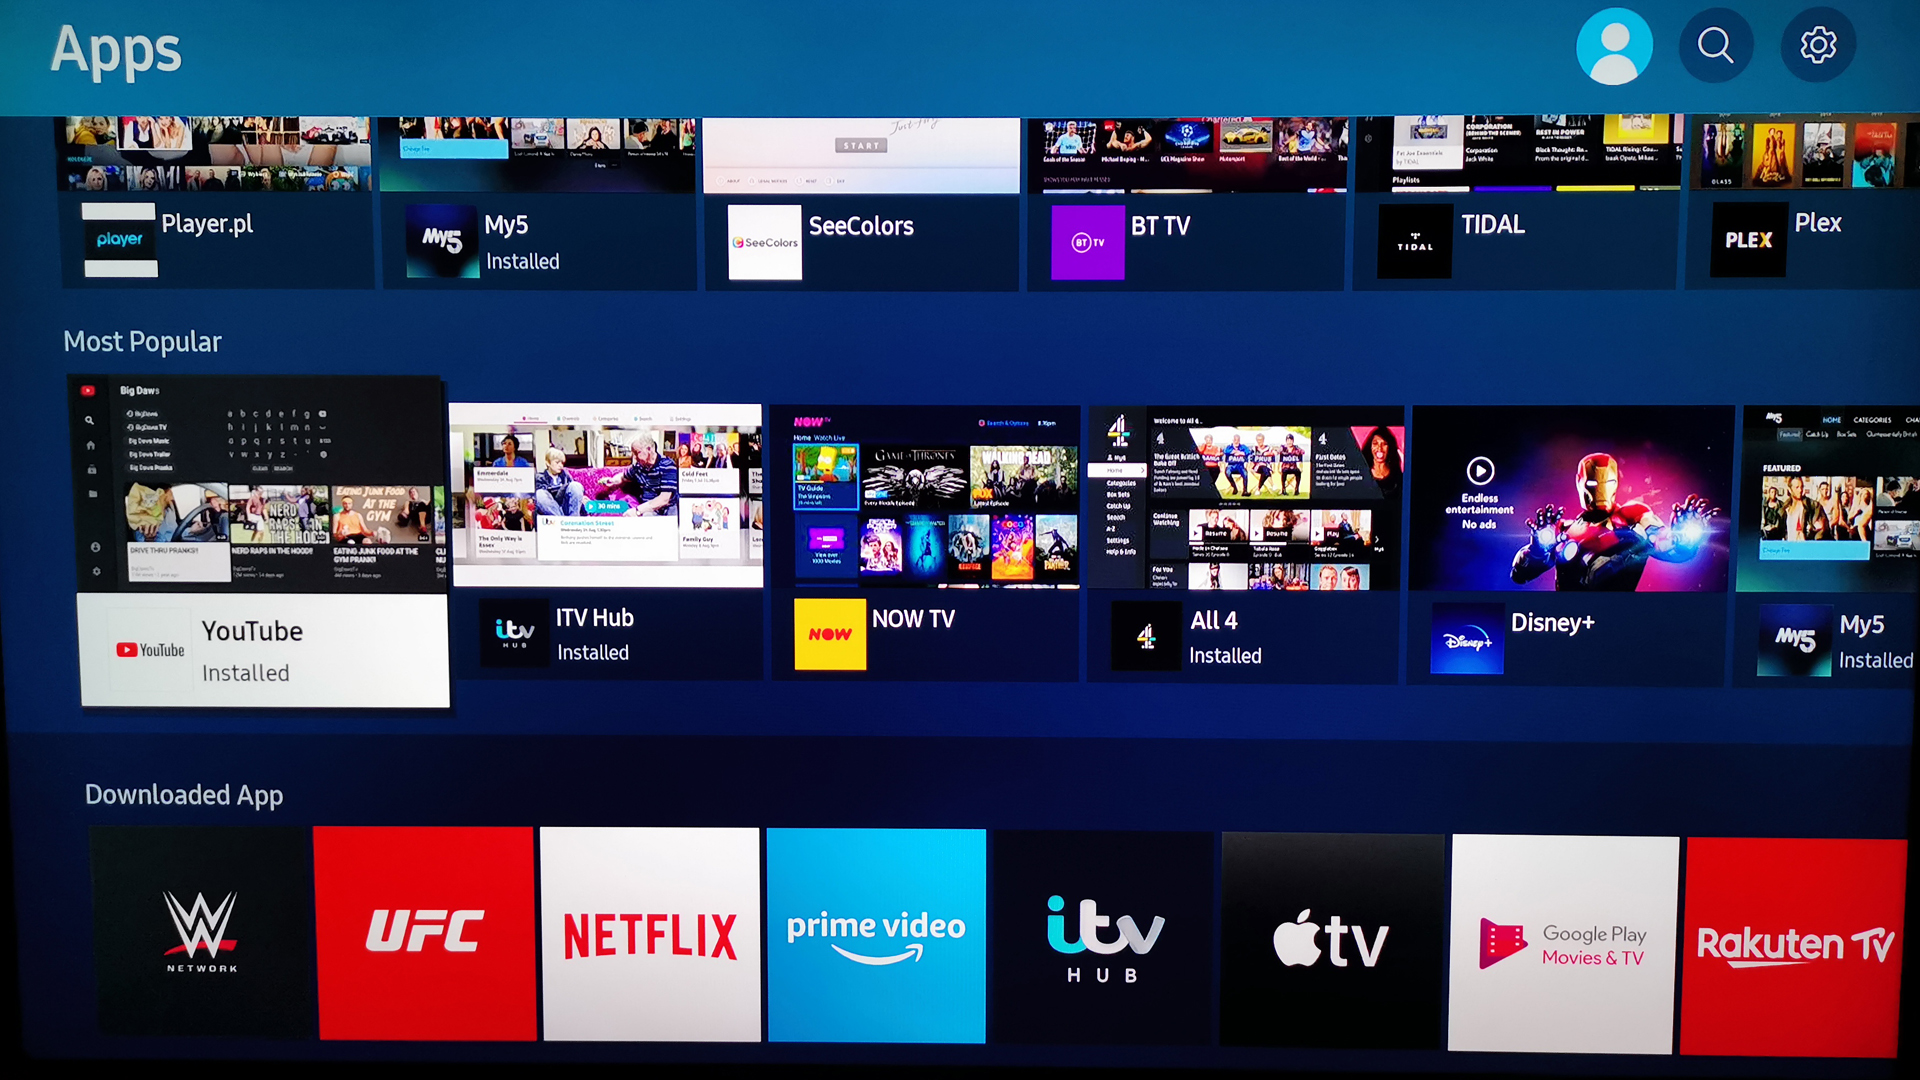 A look at the guide and apps available on the Samsung Q80T QLED TV